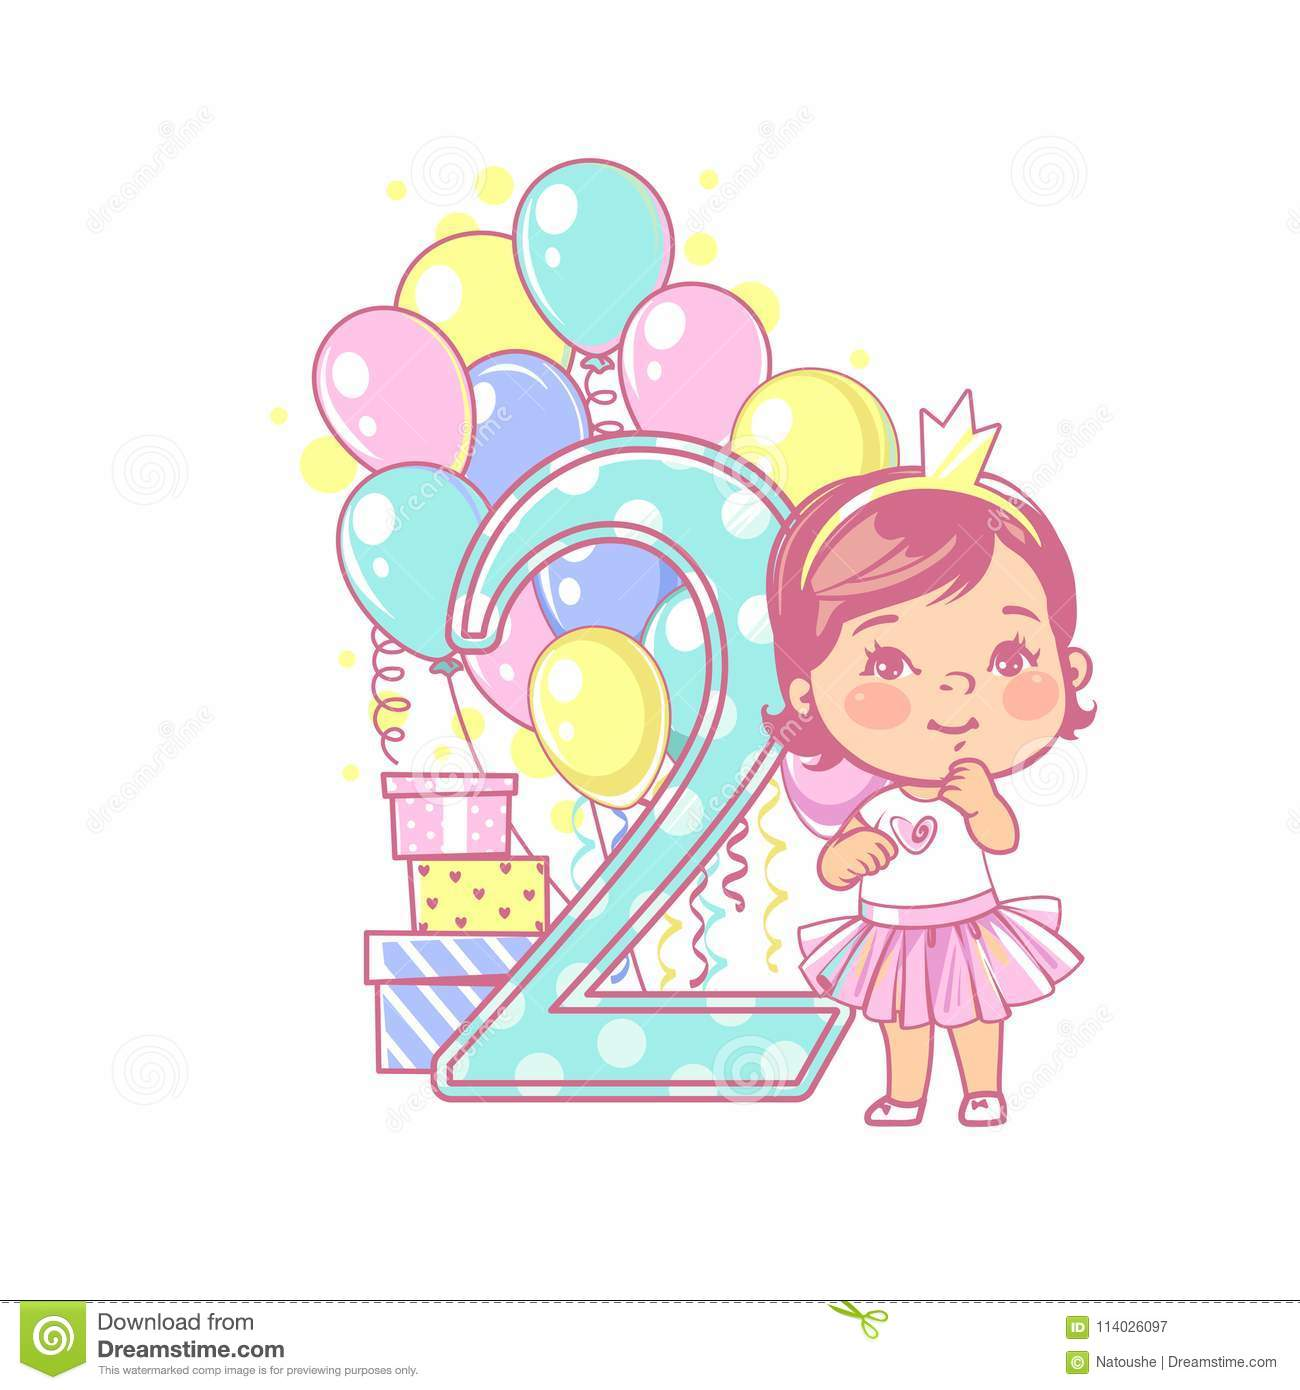 Two Years Old Girl Standing Near Large Number 2 Second Year Celebration Little Girls Birthday Cute Wearing Tutu Skirt Air Balloons Gifts Crown